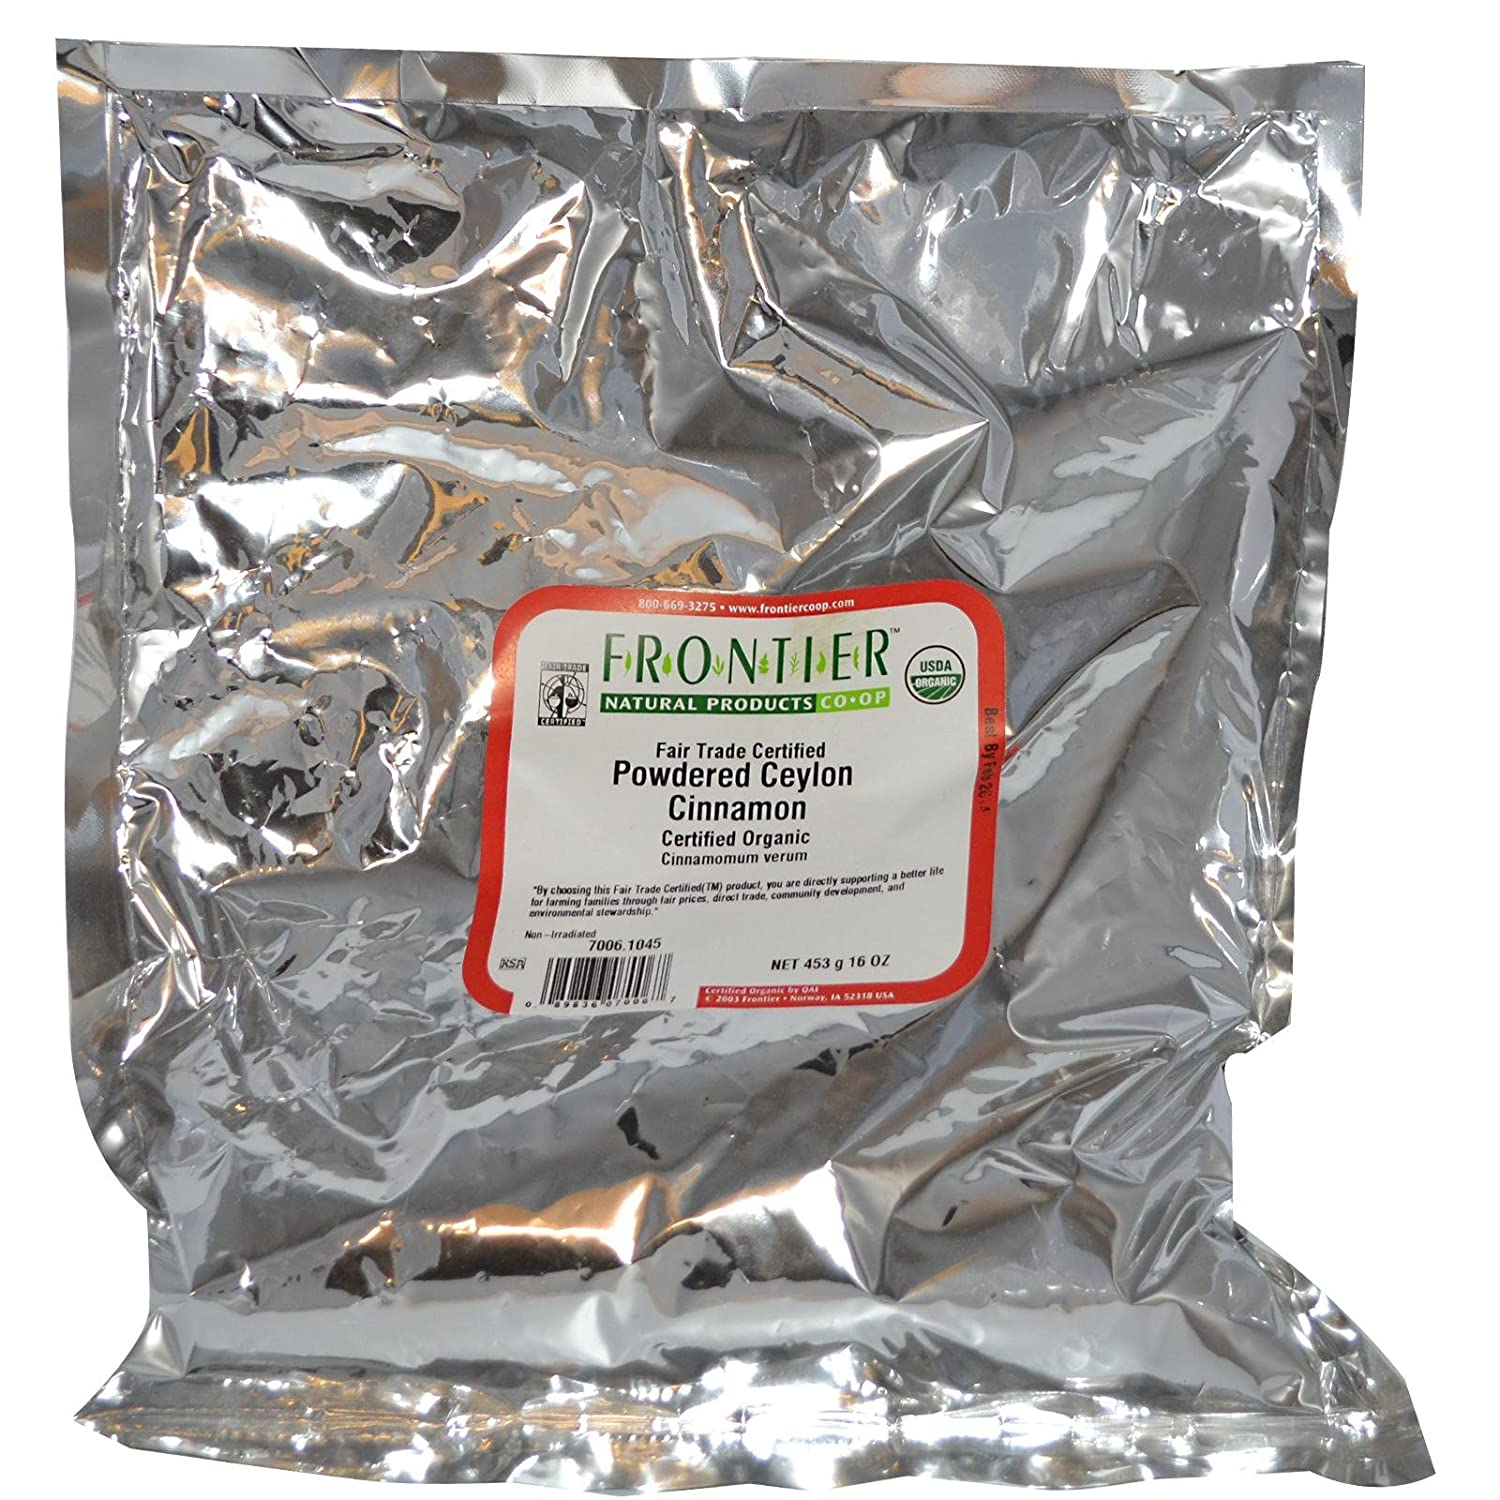 http://www.amazon.com/Frontier-Organic-Ceylon-Ground-Cinnamon/dp/B00416T8Q6/ref=as_li_ss_til?tag=lettfromahome-20&linkCode=w01&creativeASIN=B00416T8Q6